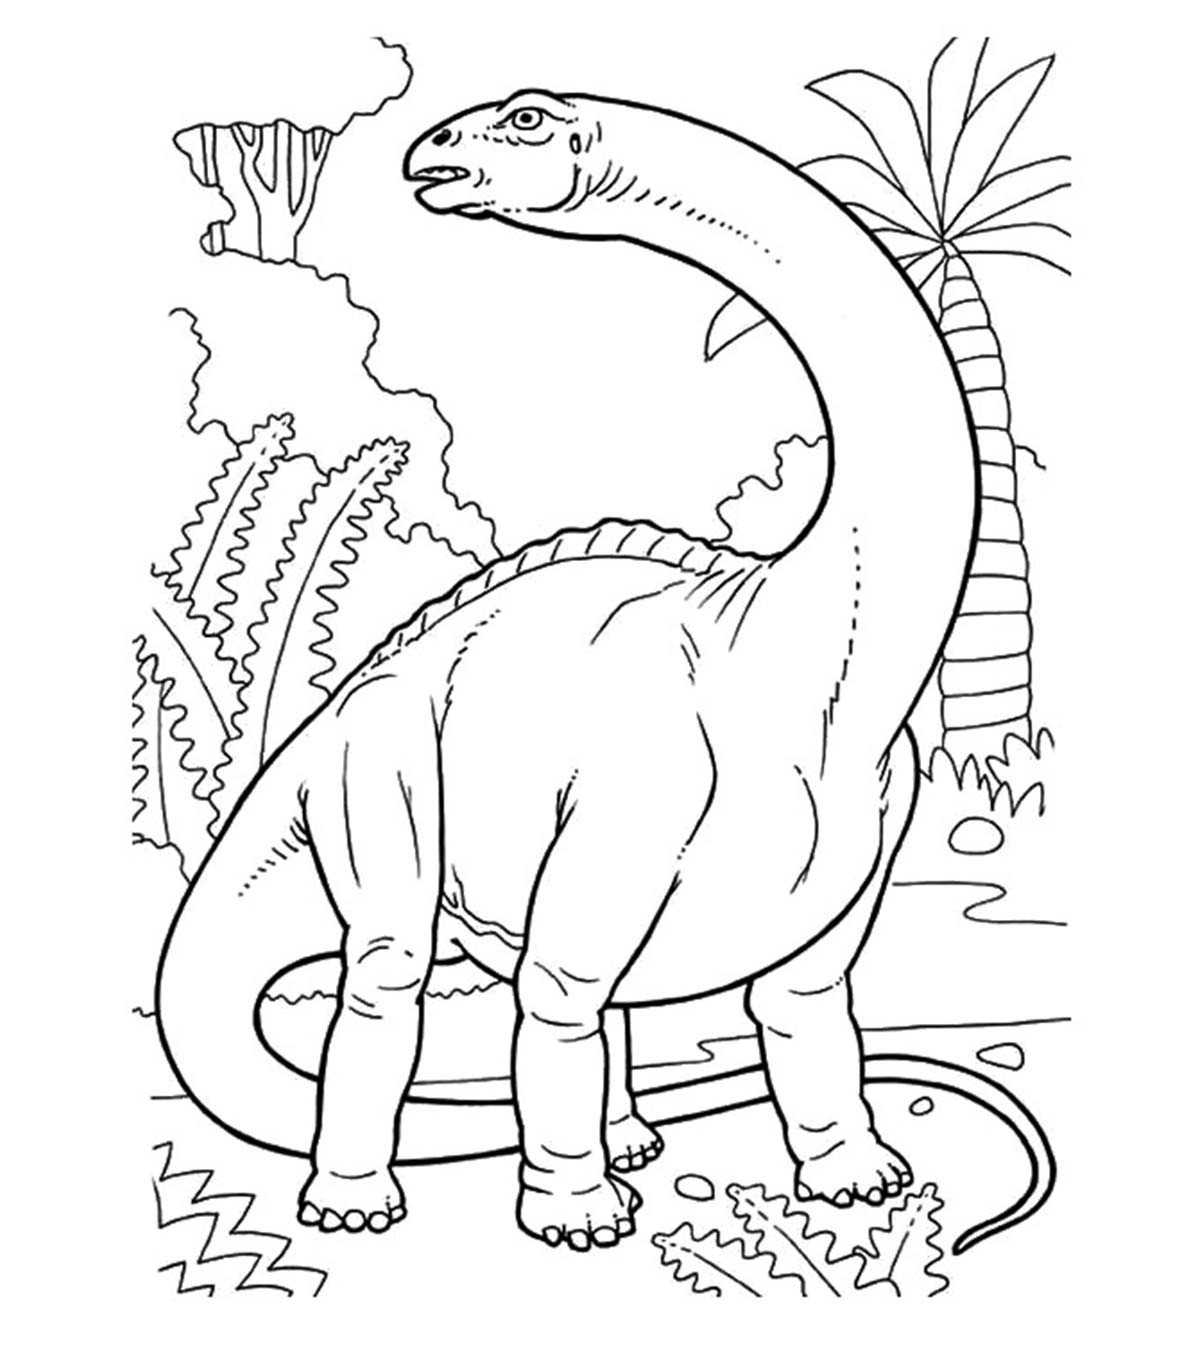 35 Unique Dinosaur Coloring Pages Your Toddler Will Love 1